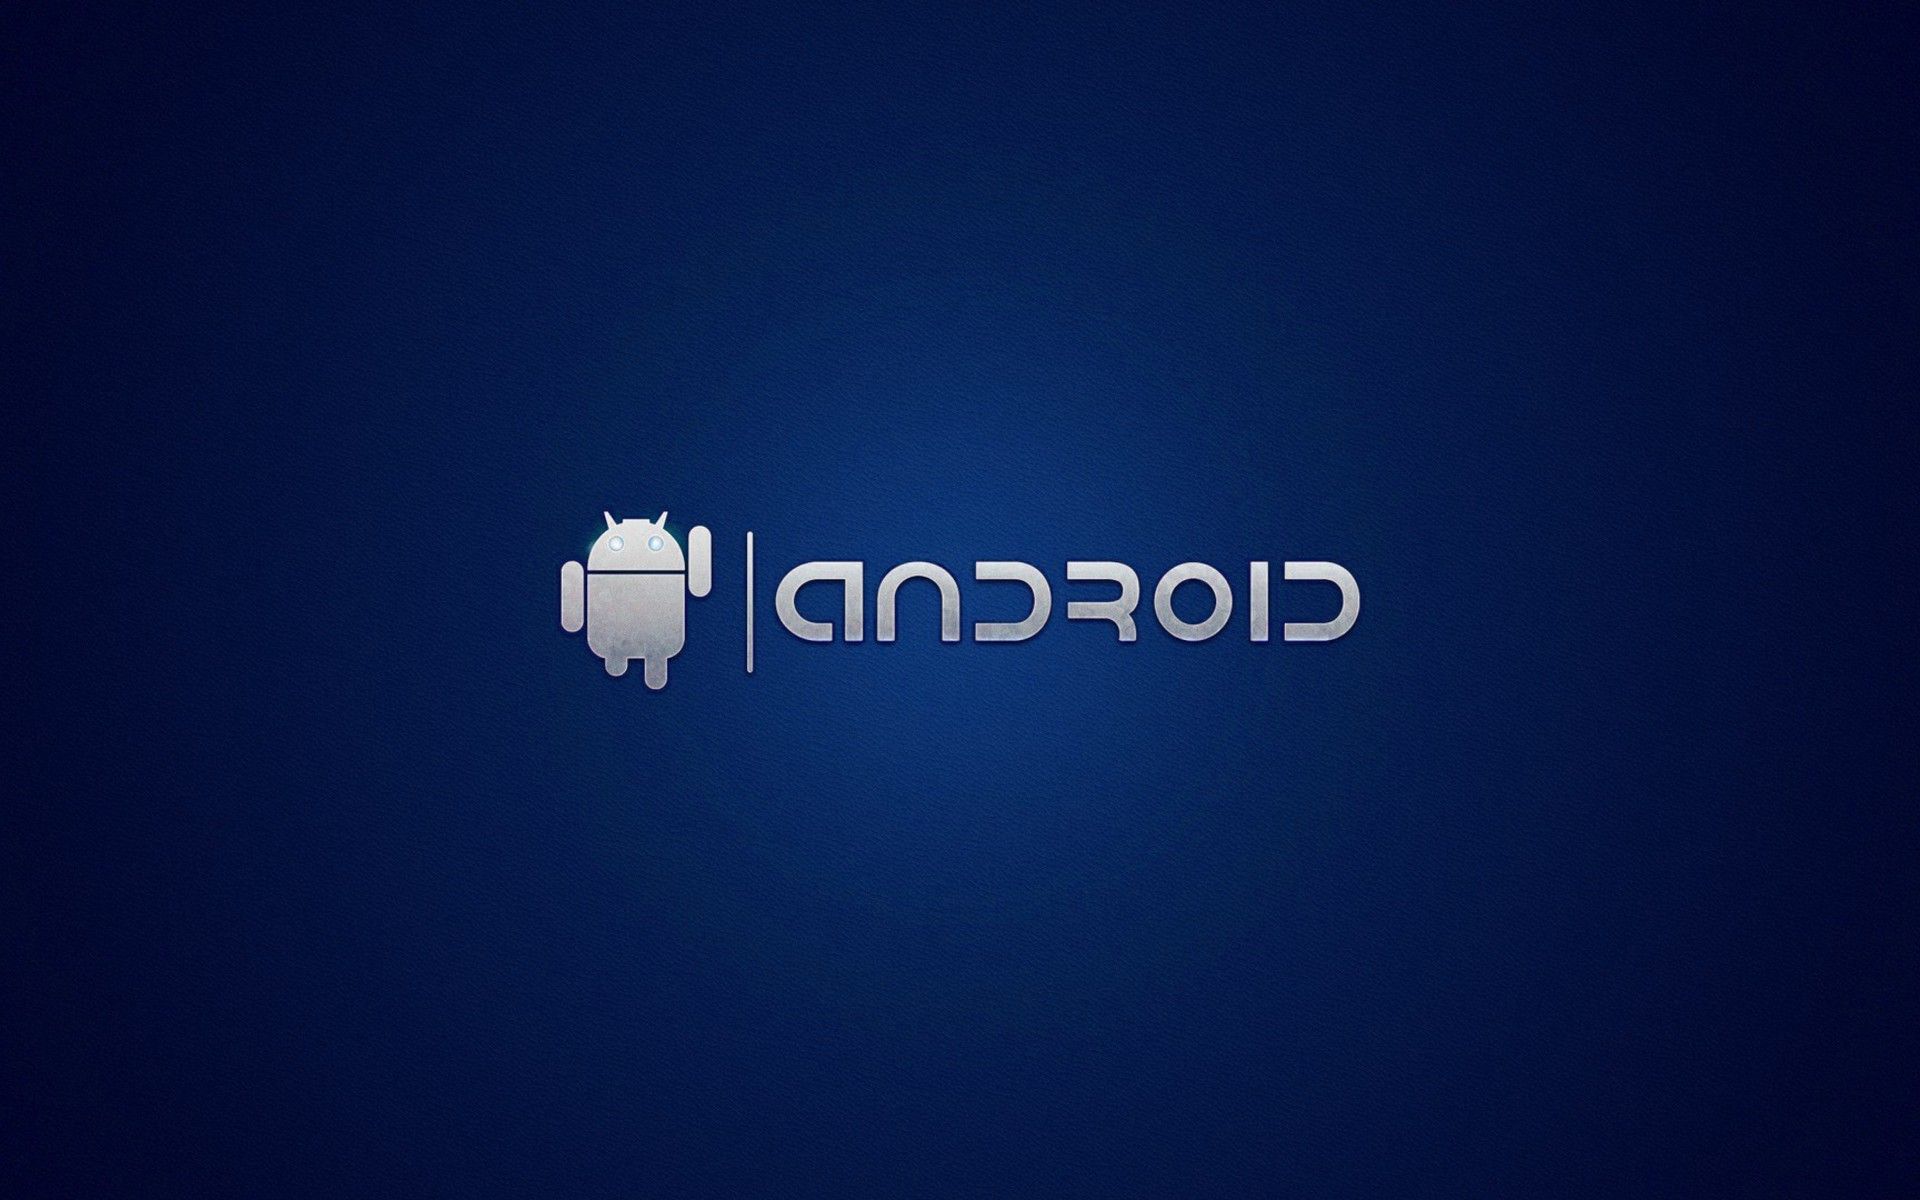 Wallpaper Android Blue